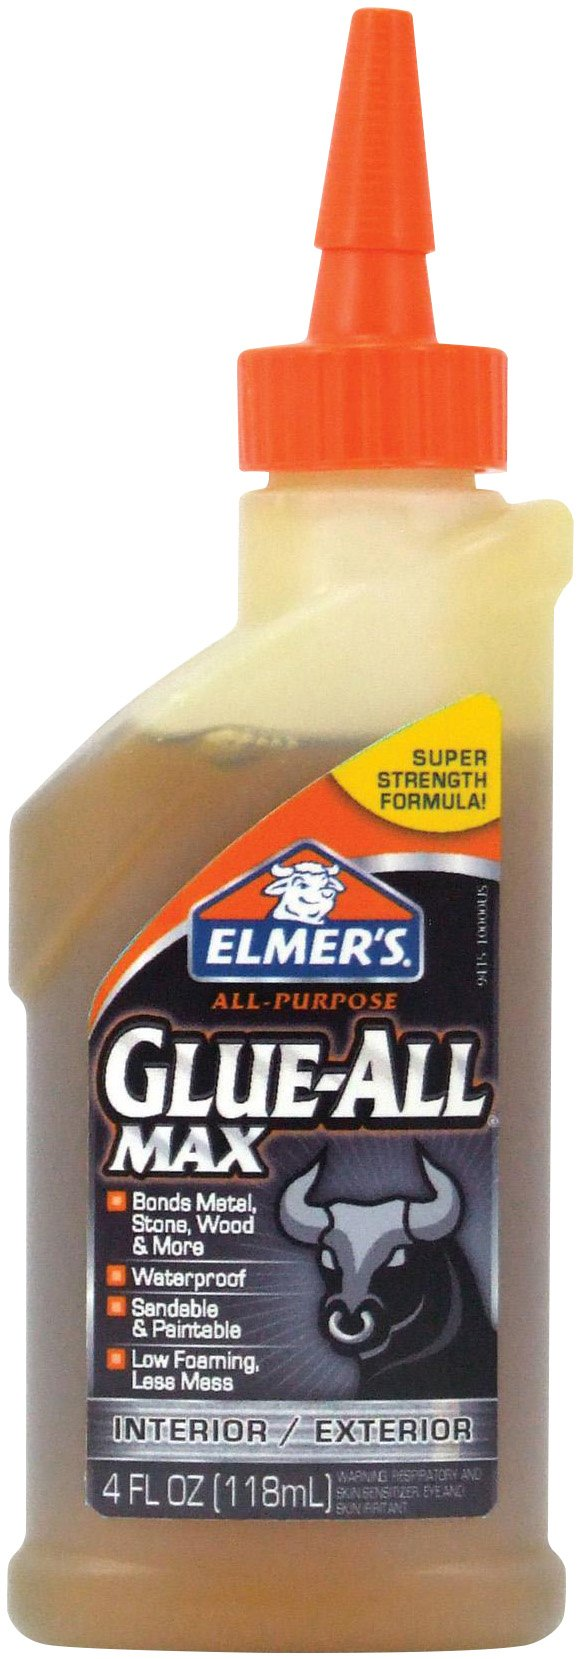 Elmer's E9415 All Purpose Glue-All Max, 4 Ounces